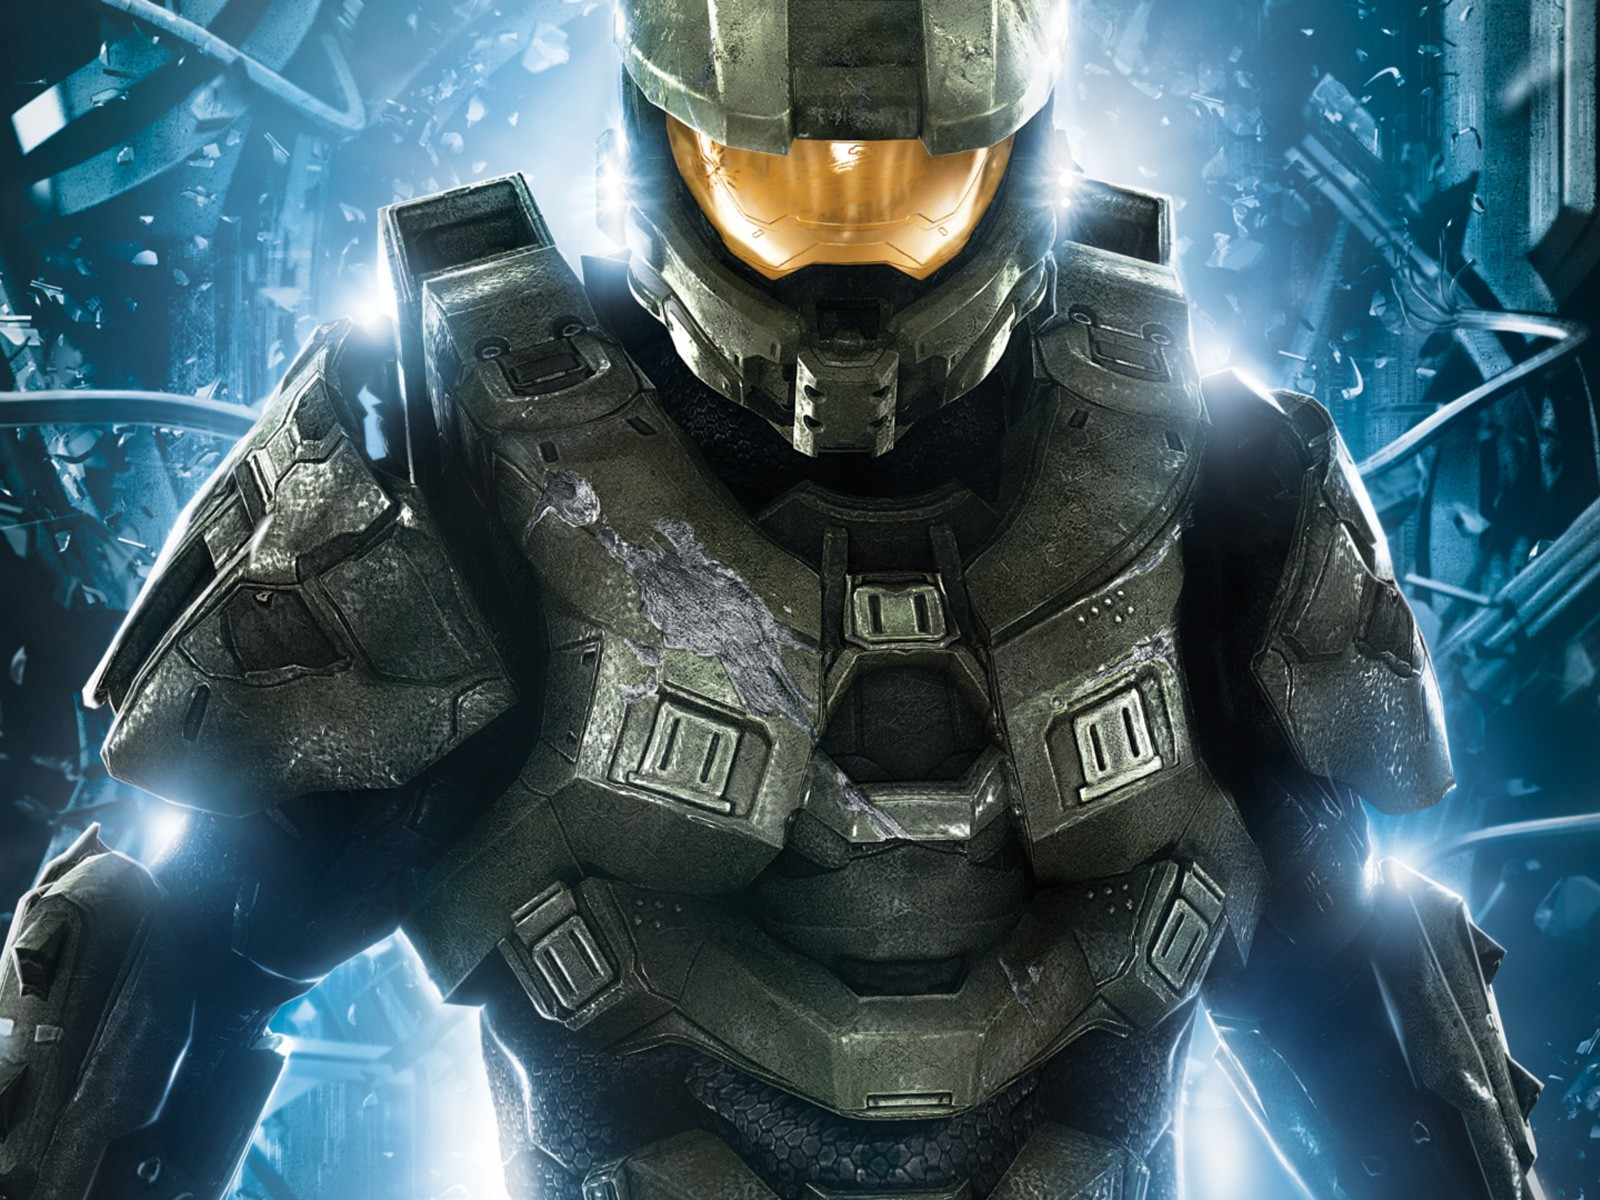 Awesome Halo 4 Wallpapers for your Desktop   Inspiration Hut 1600x1200